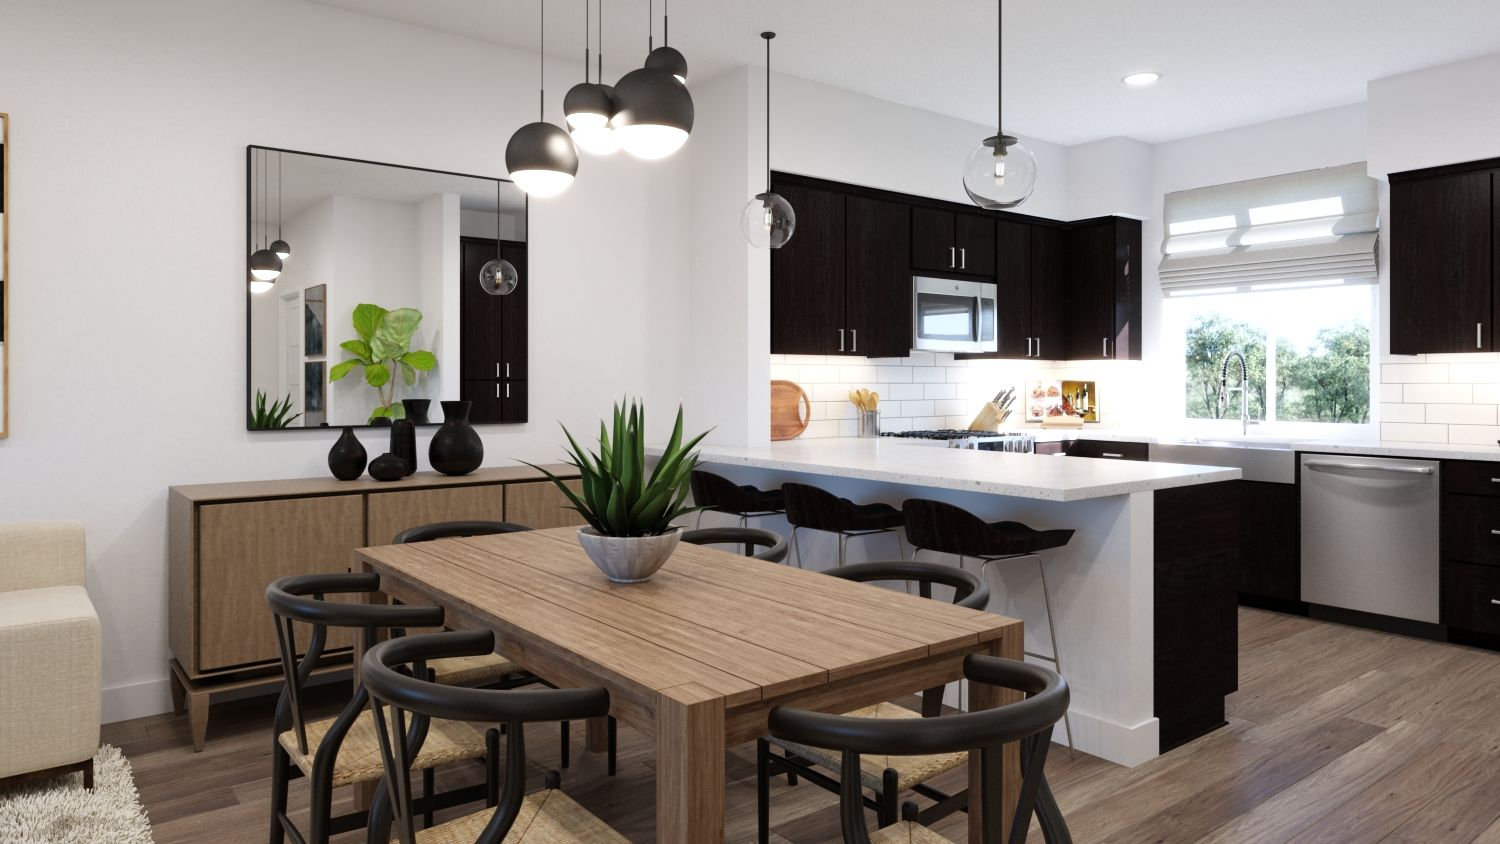 Kitchen featured in the Plan 1 By Melia in Orange County, CA